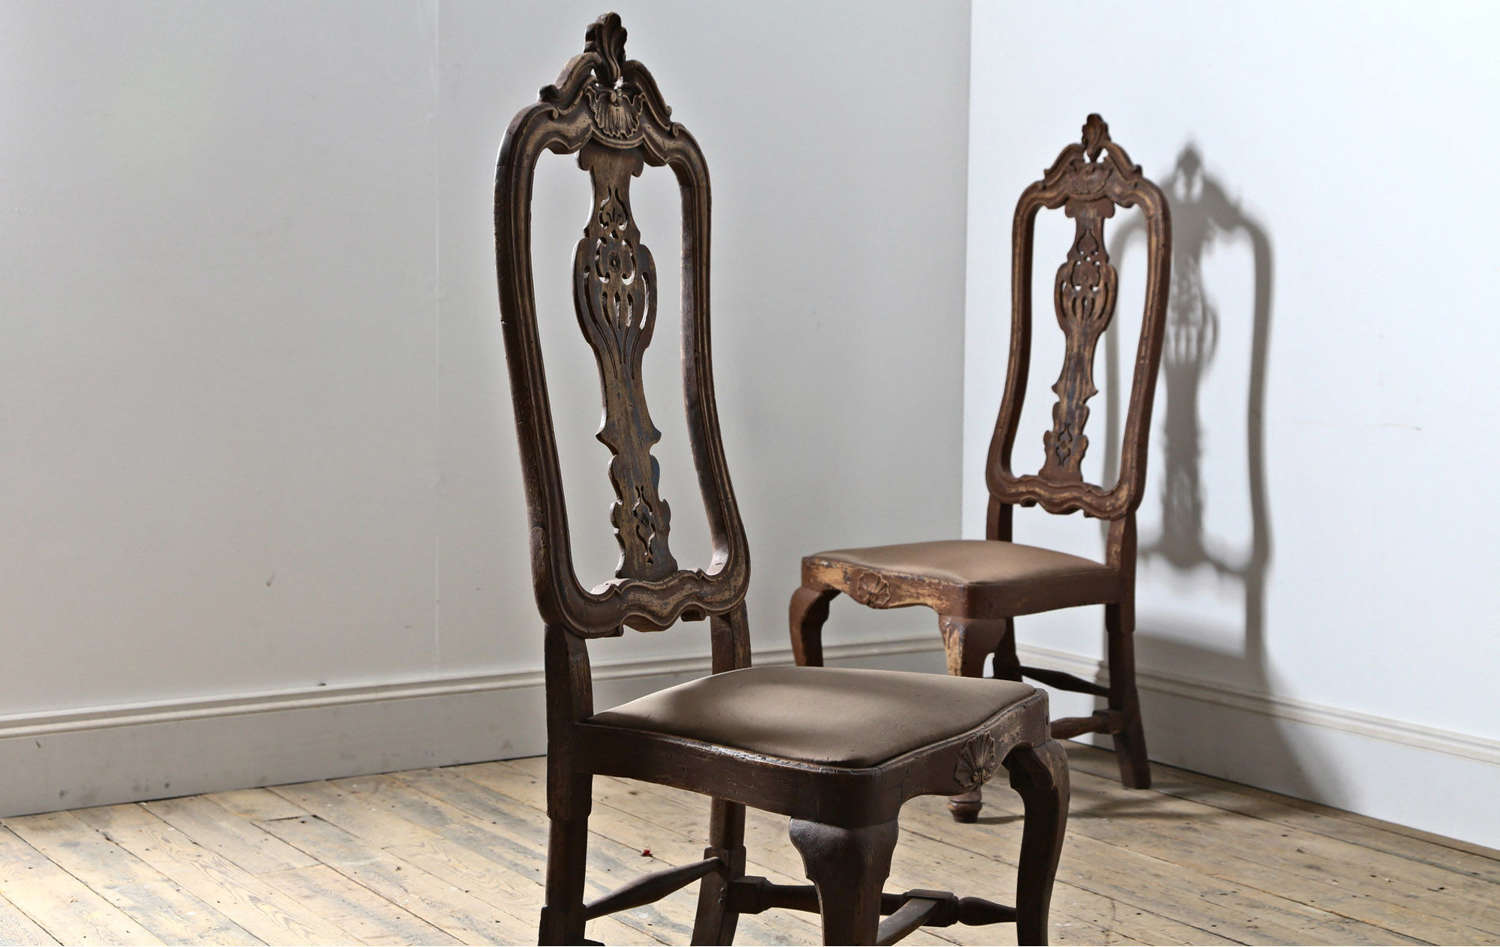 Pair of 18th century Portuguese chairs